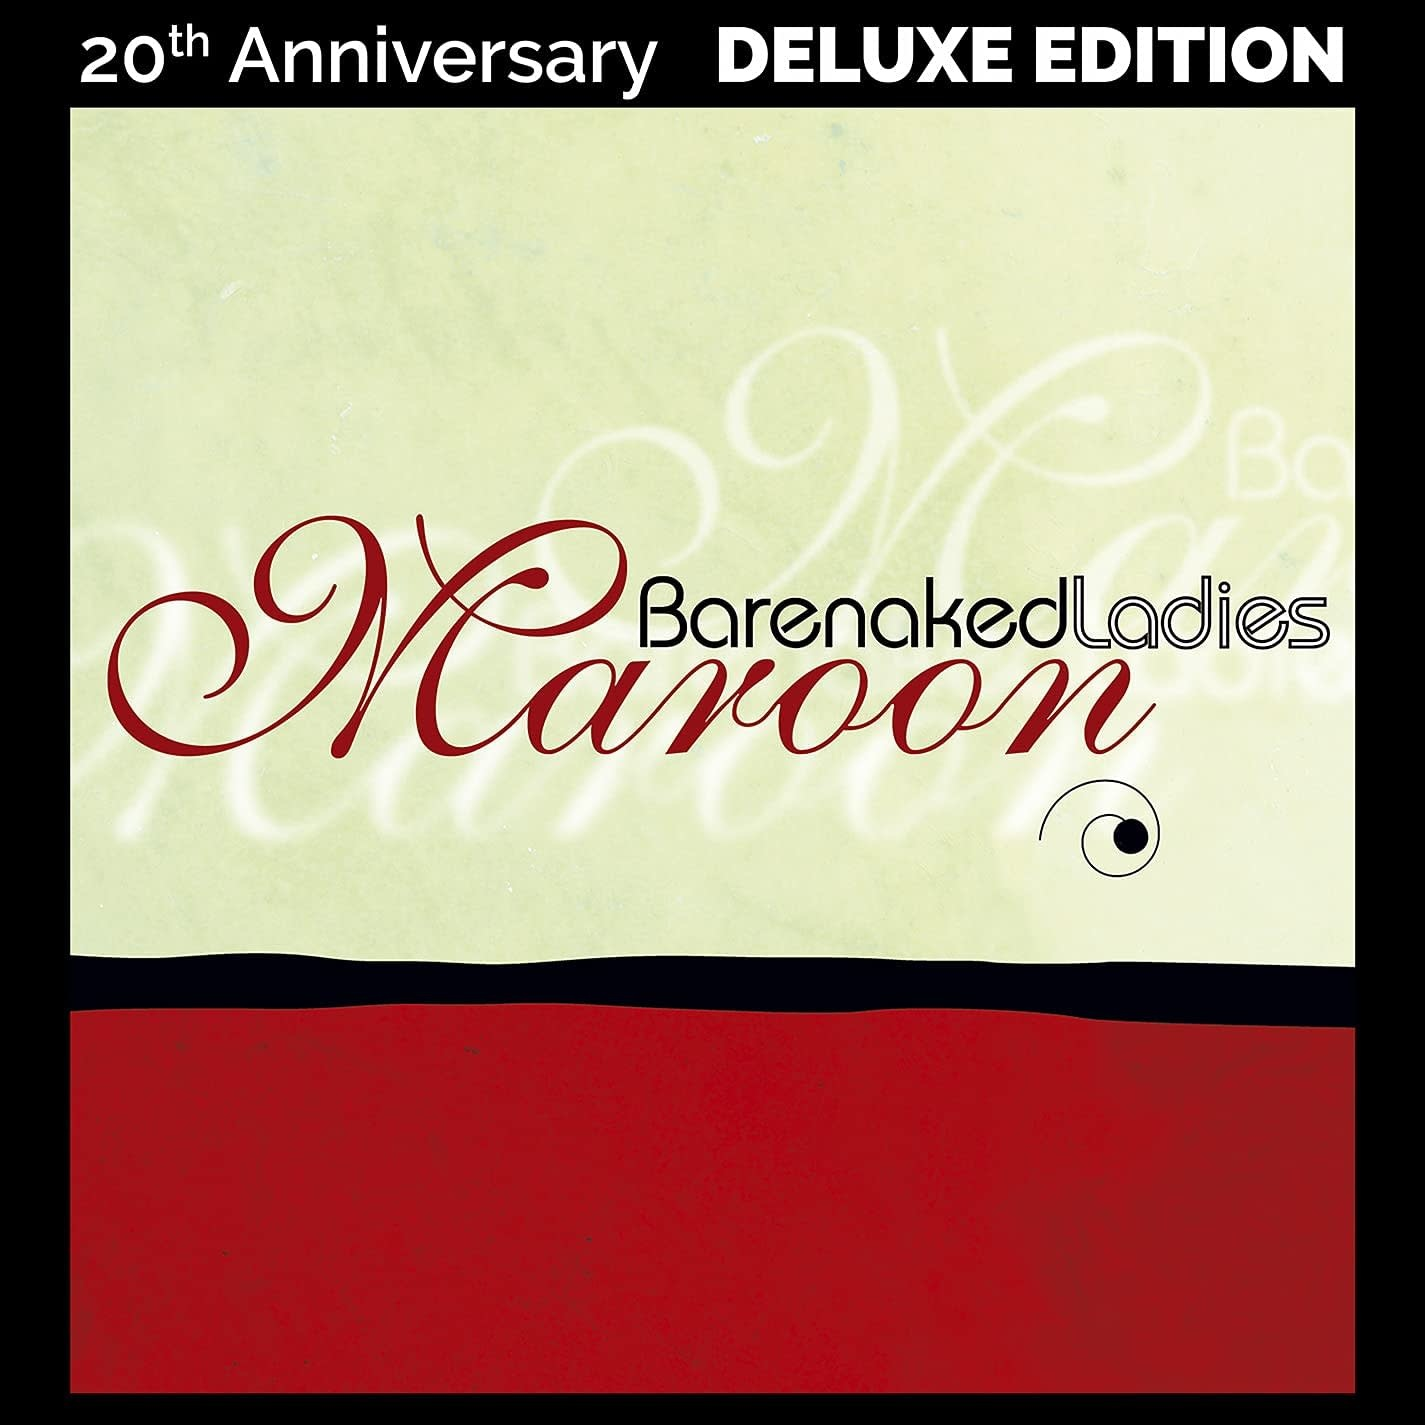 Barenaked Ladies – Maroon (20th Anniversary Deluxe Edition)